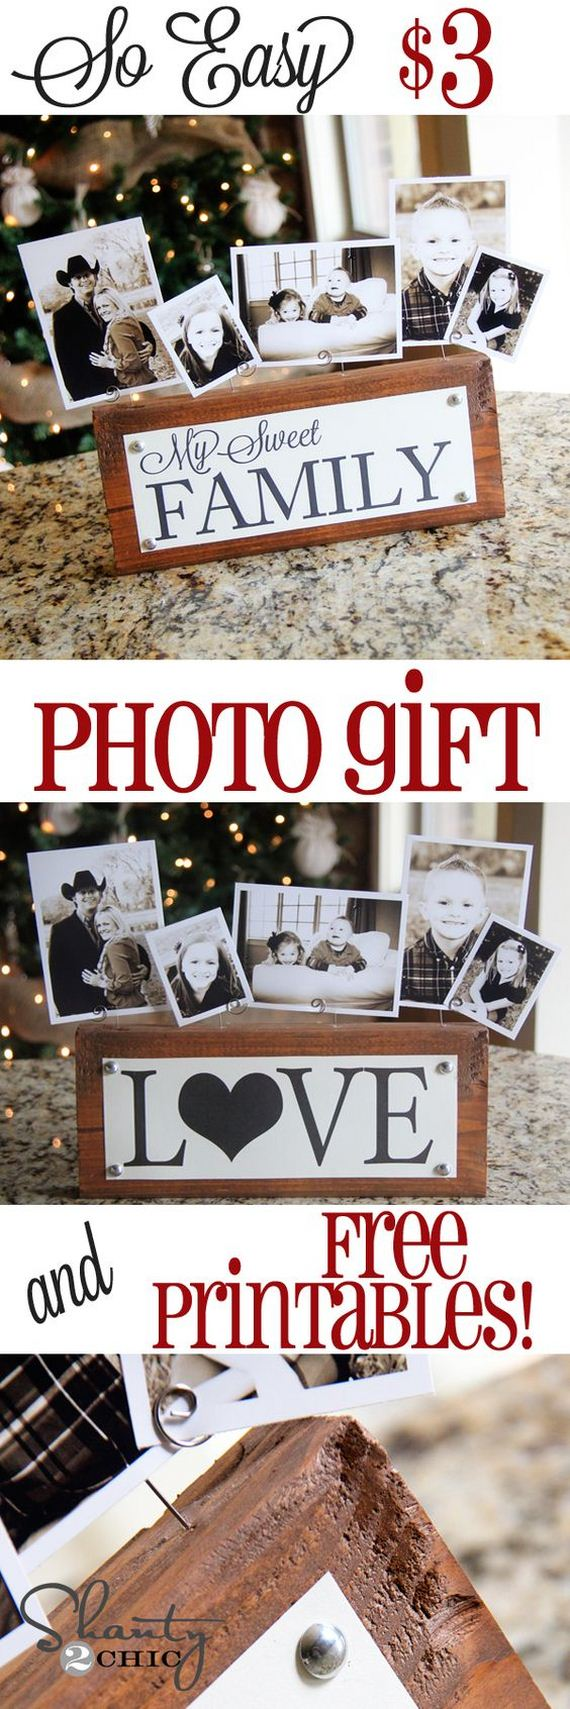 08-photos-cards-christmas